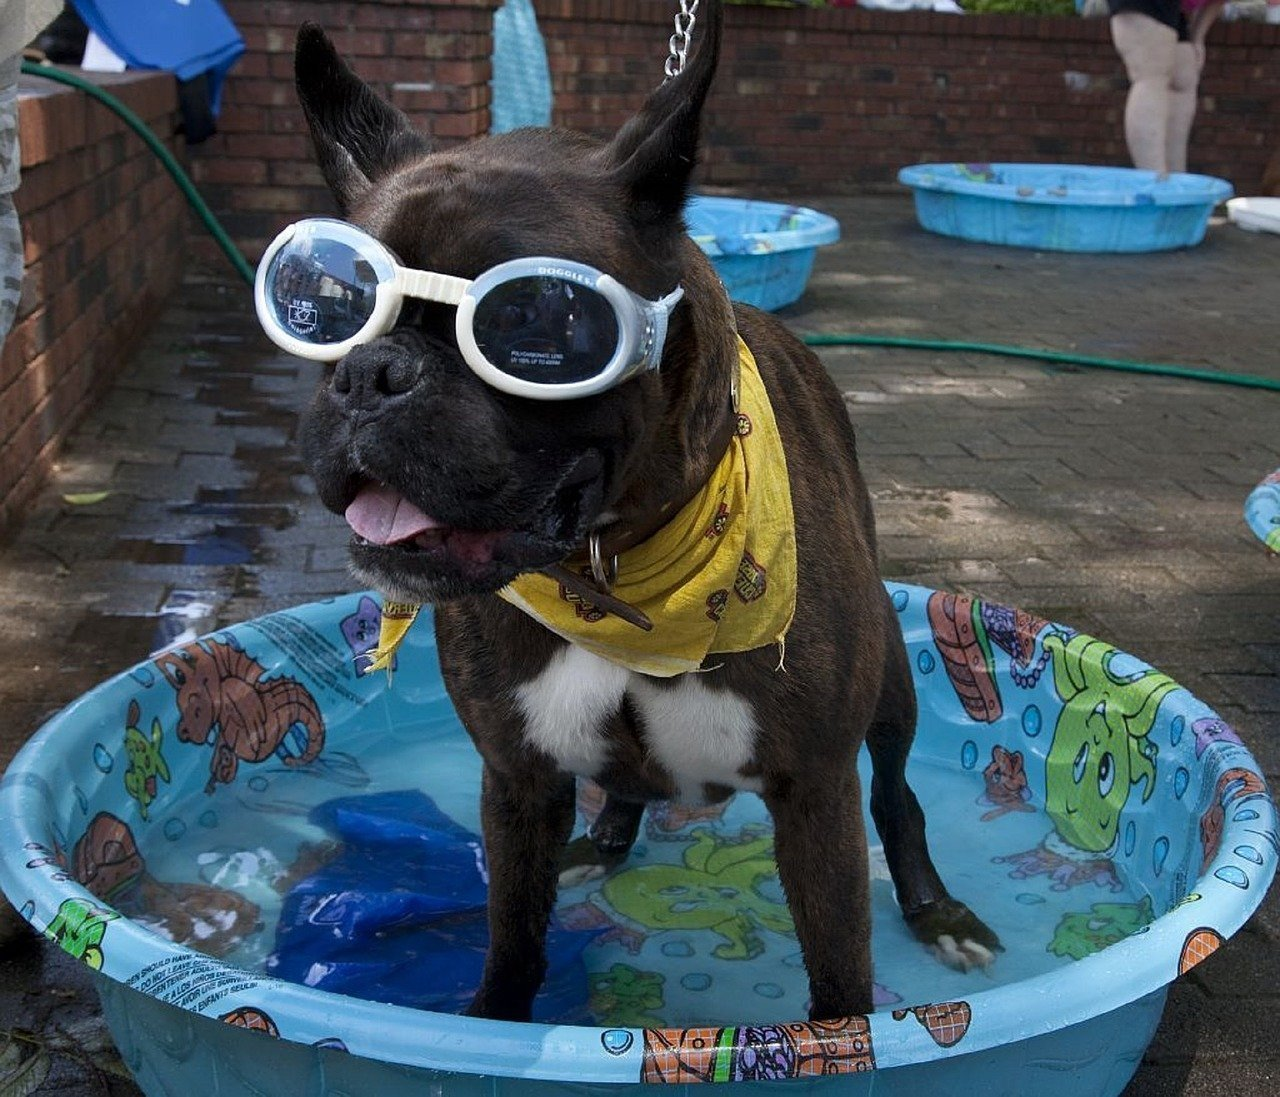 Dog in Pool - Entertaining Backyard Games To Play With Your Dog